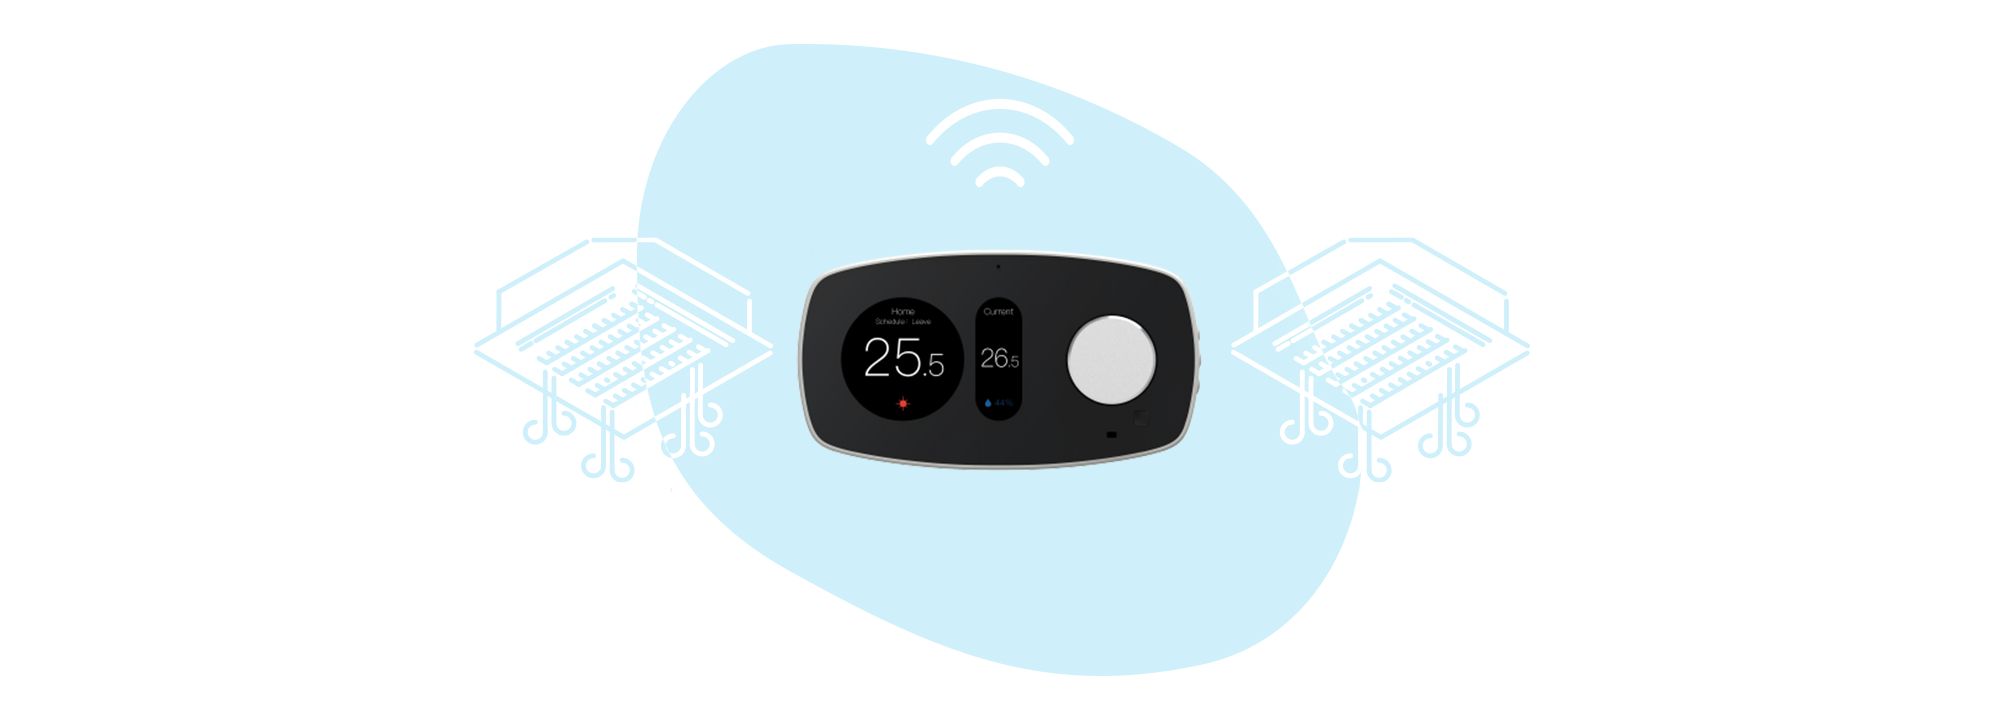 carbonTRACK Smart Thermostat